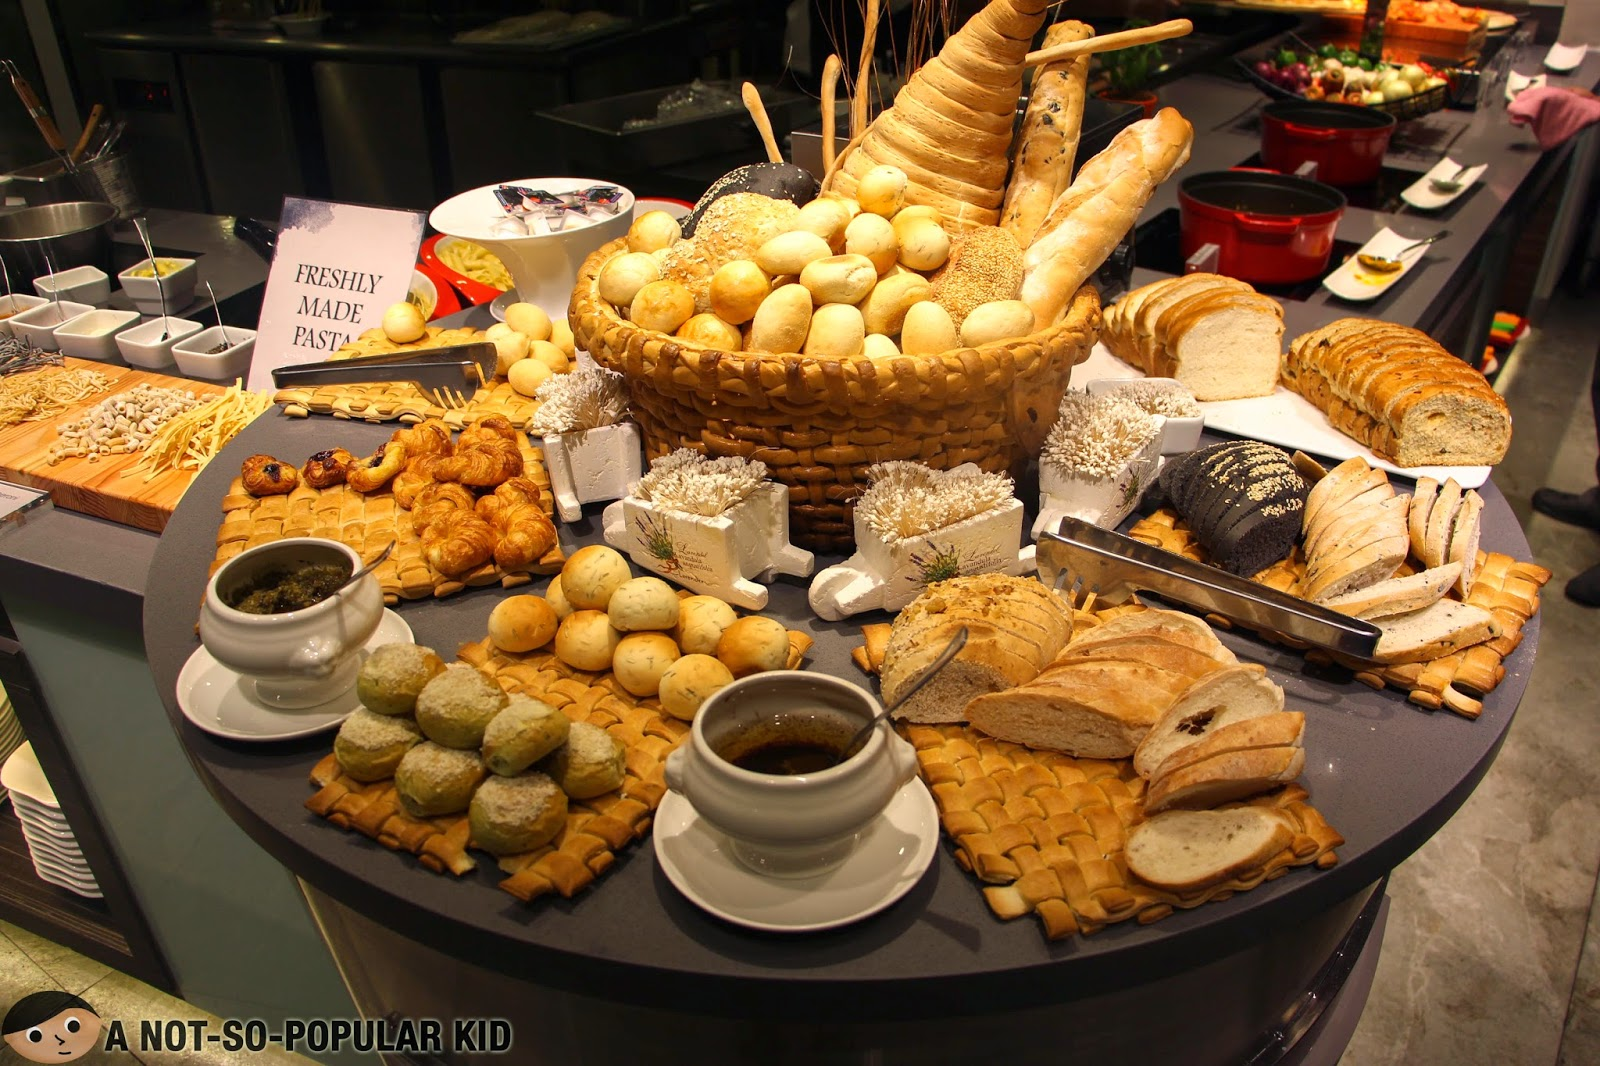 The bread selection in Vikings SM Megamall